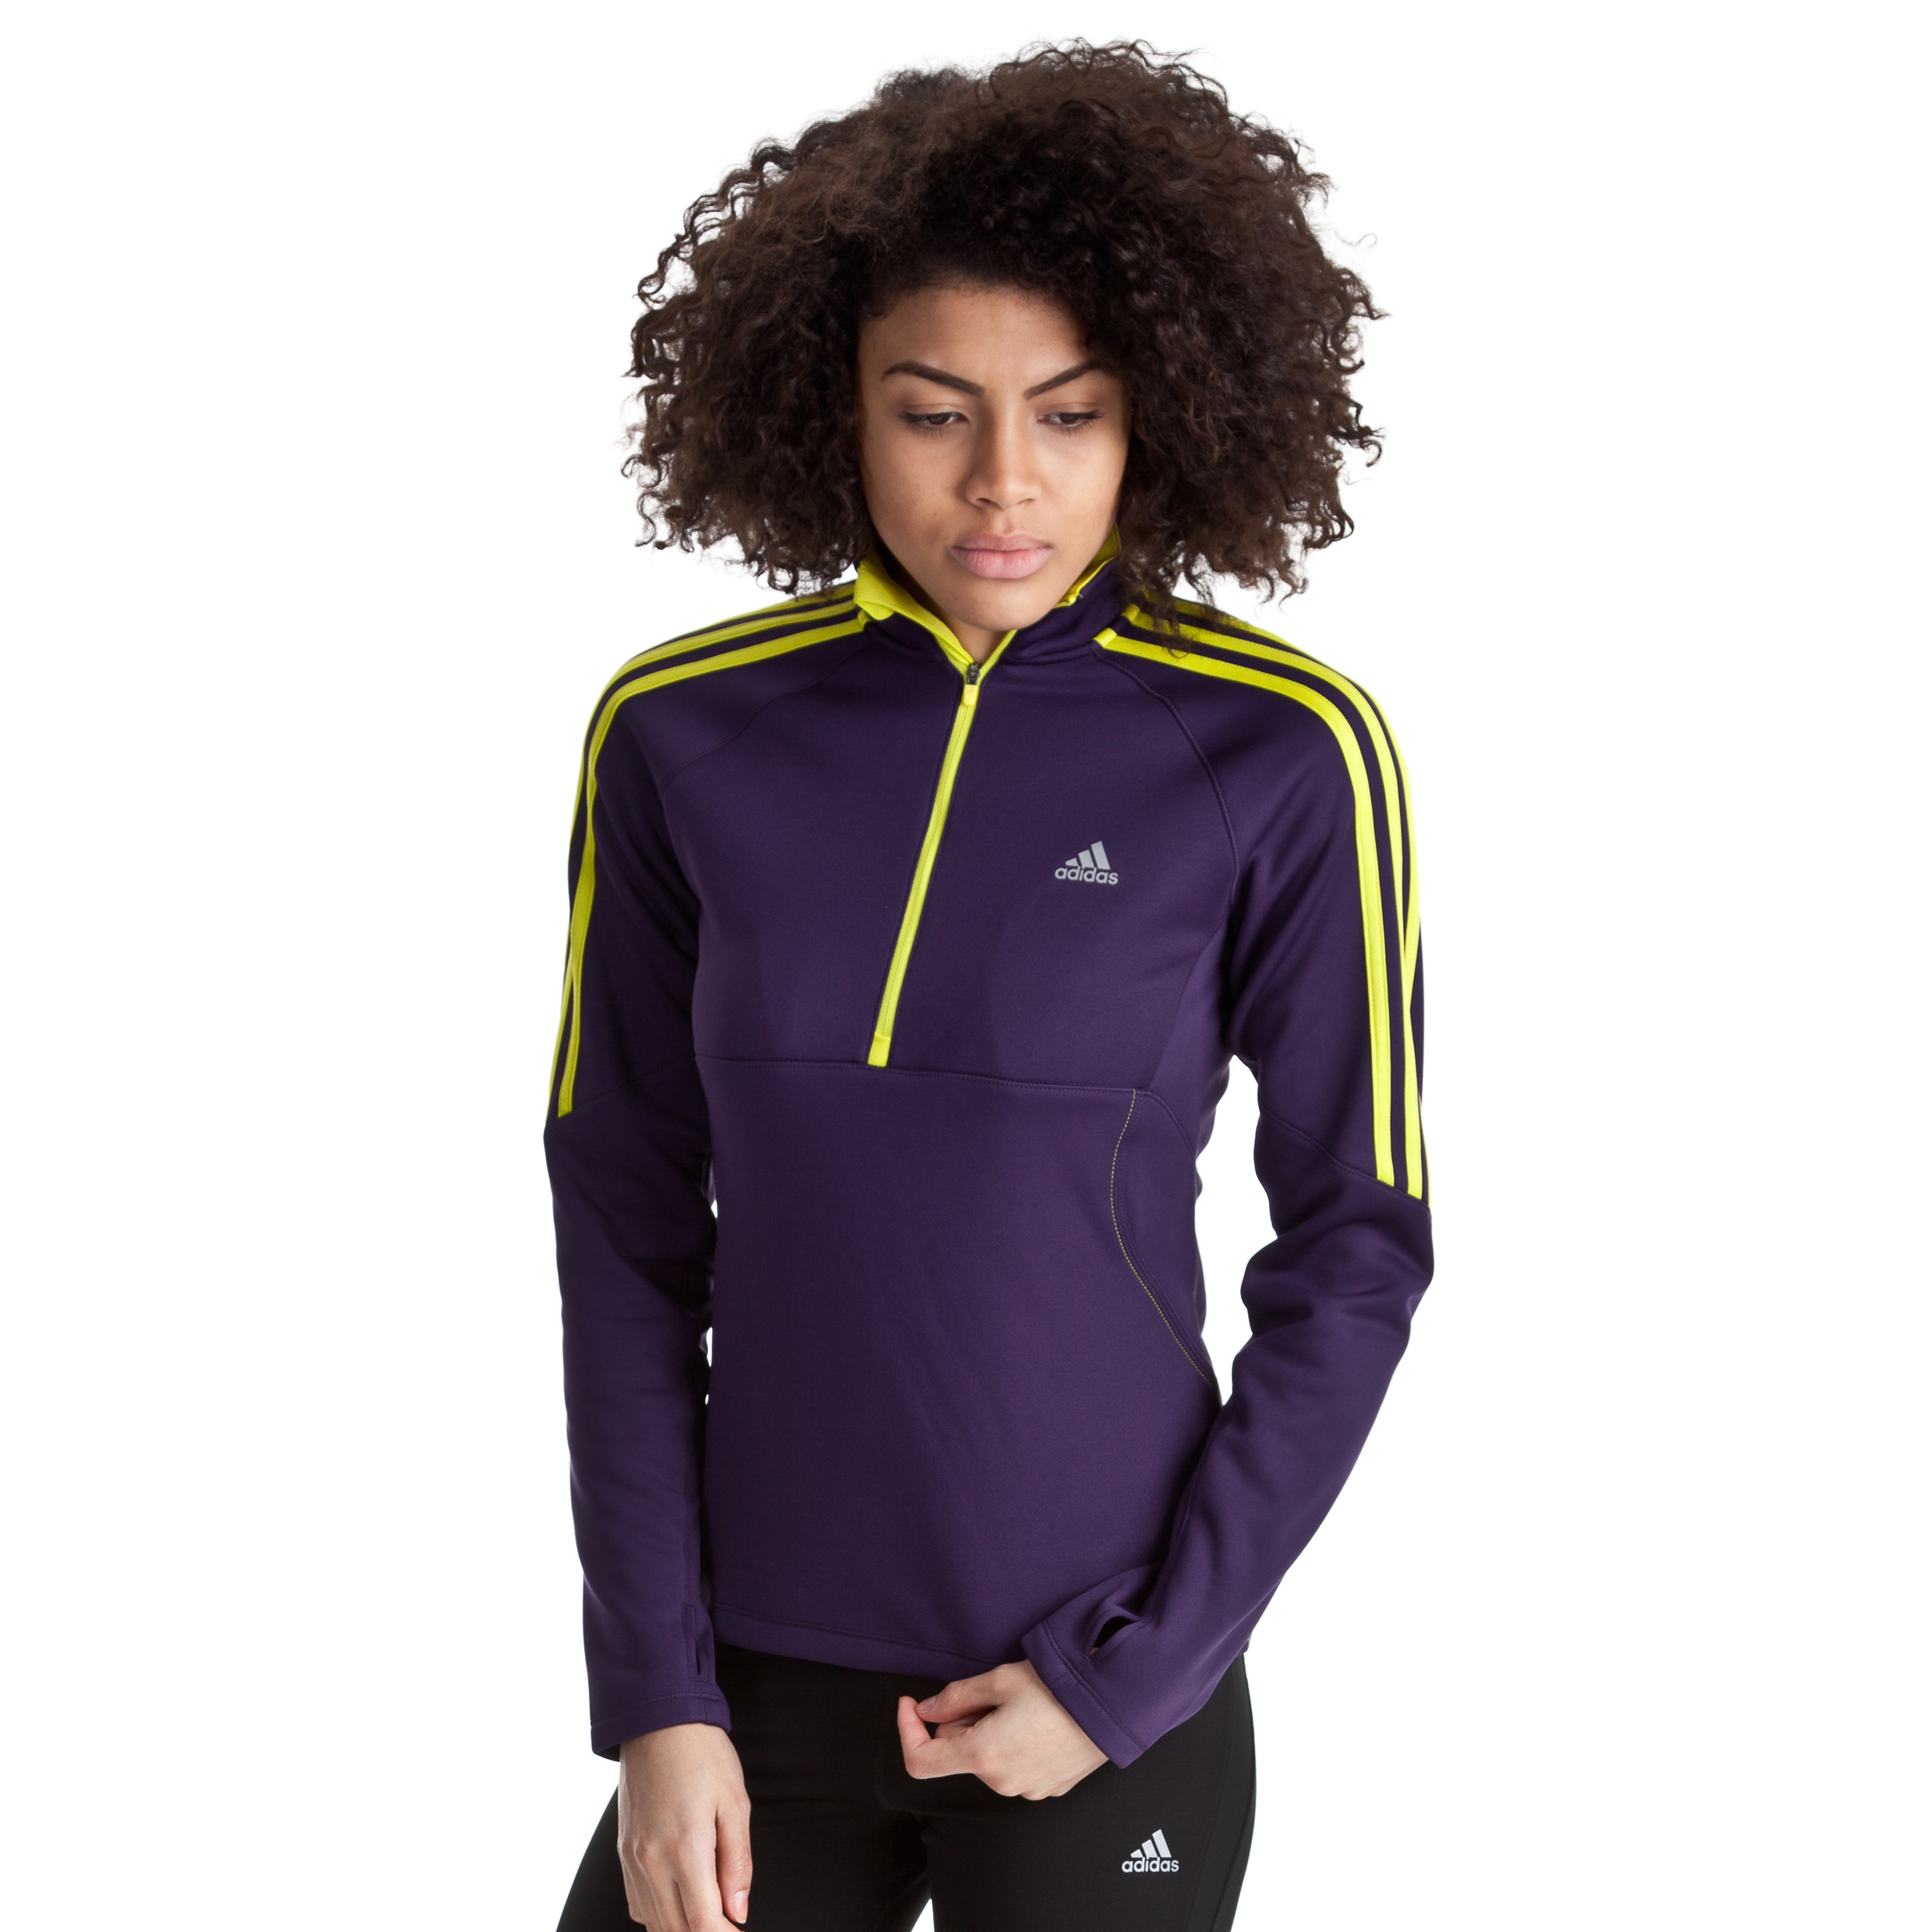 Adidas Response Long Sleeve Zip - Womens